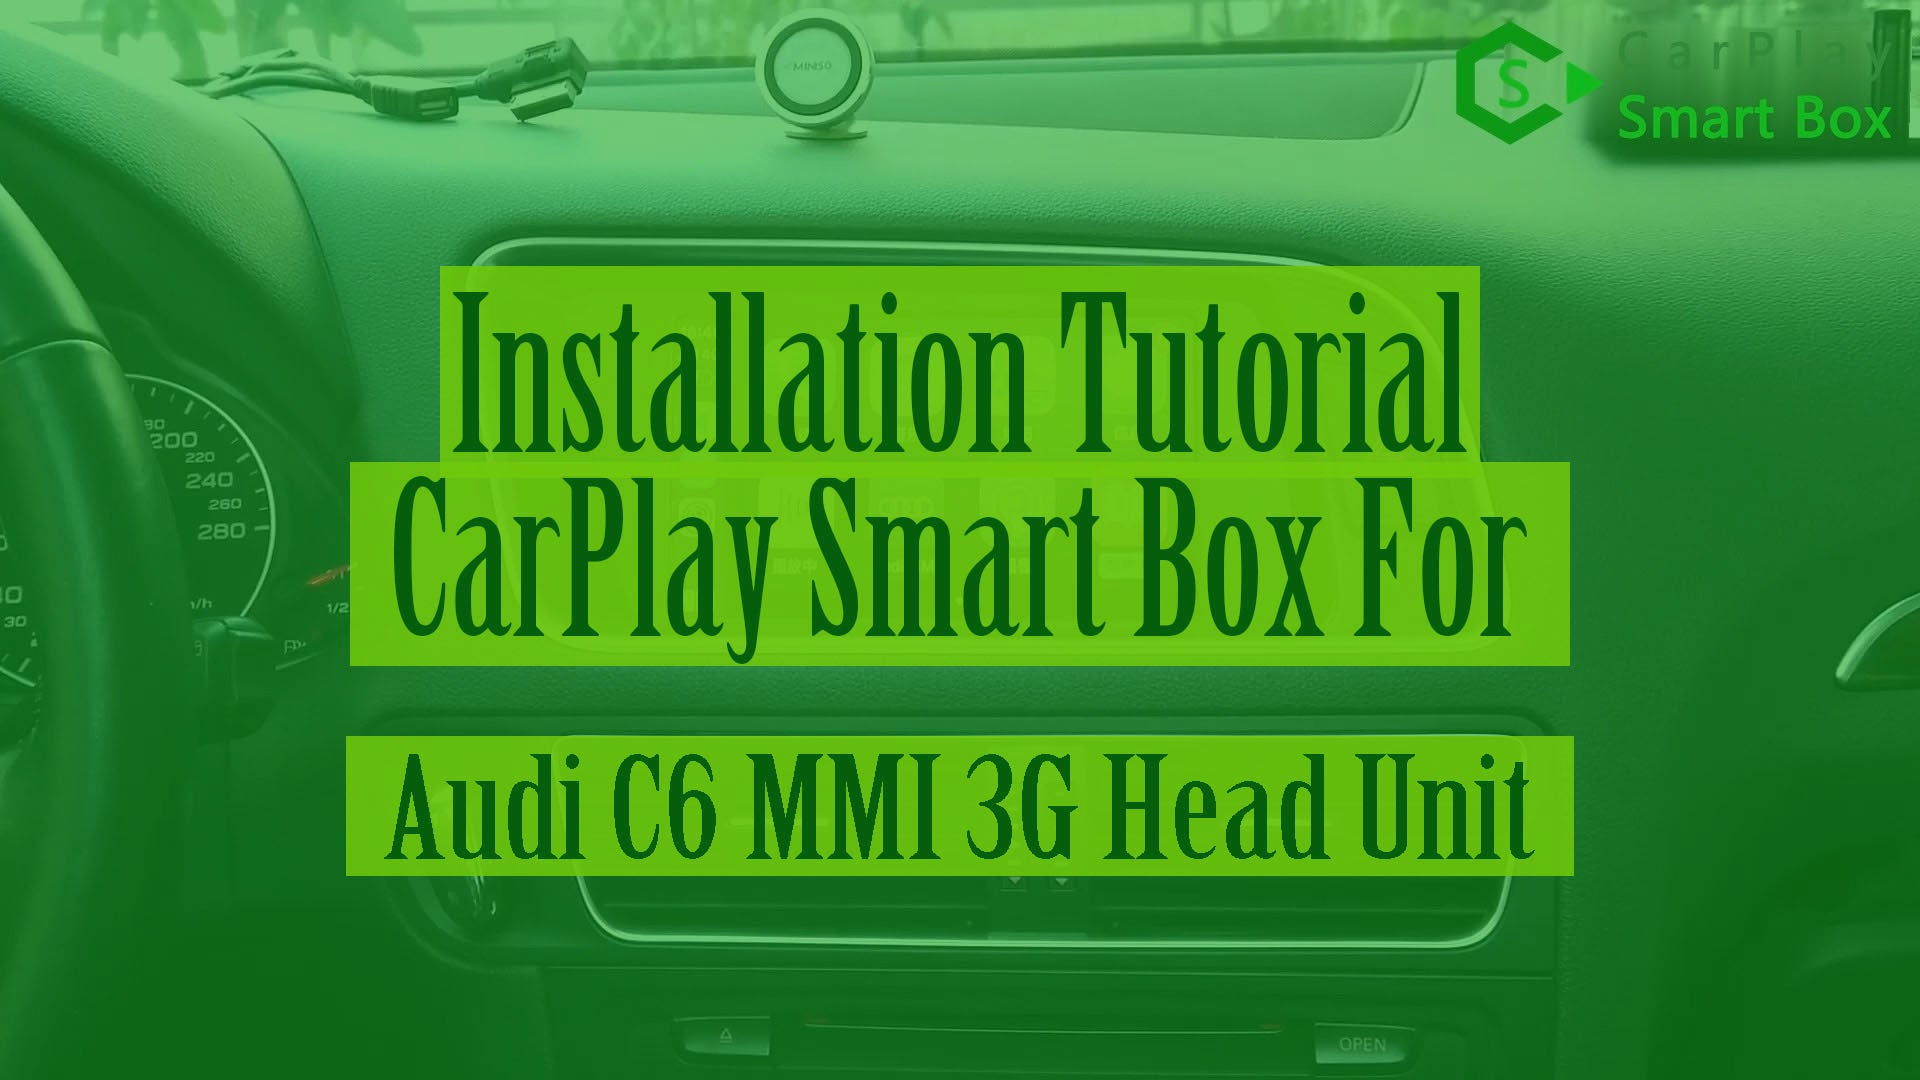 (Audi MMI 3G Head Unit) Wireless Apple CarPlay Smart Box Installation for AUDI A4 A5 Q5 MMI 3G A6 Q7 C6